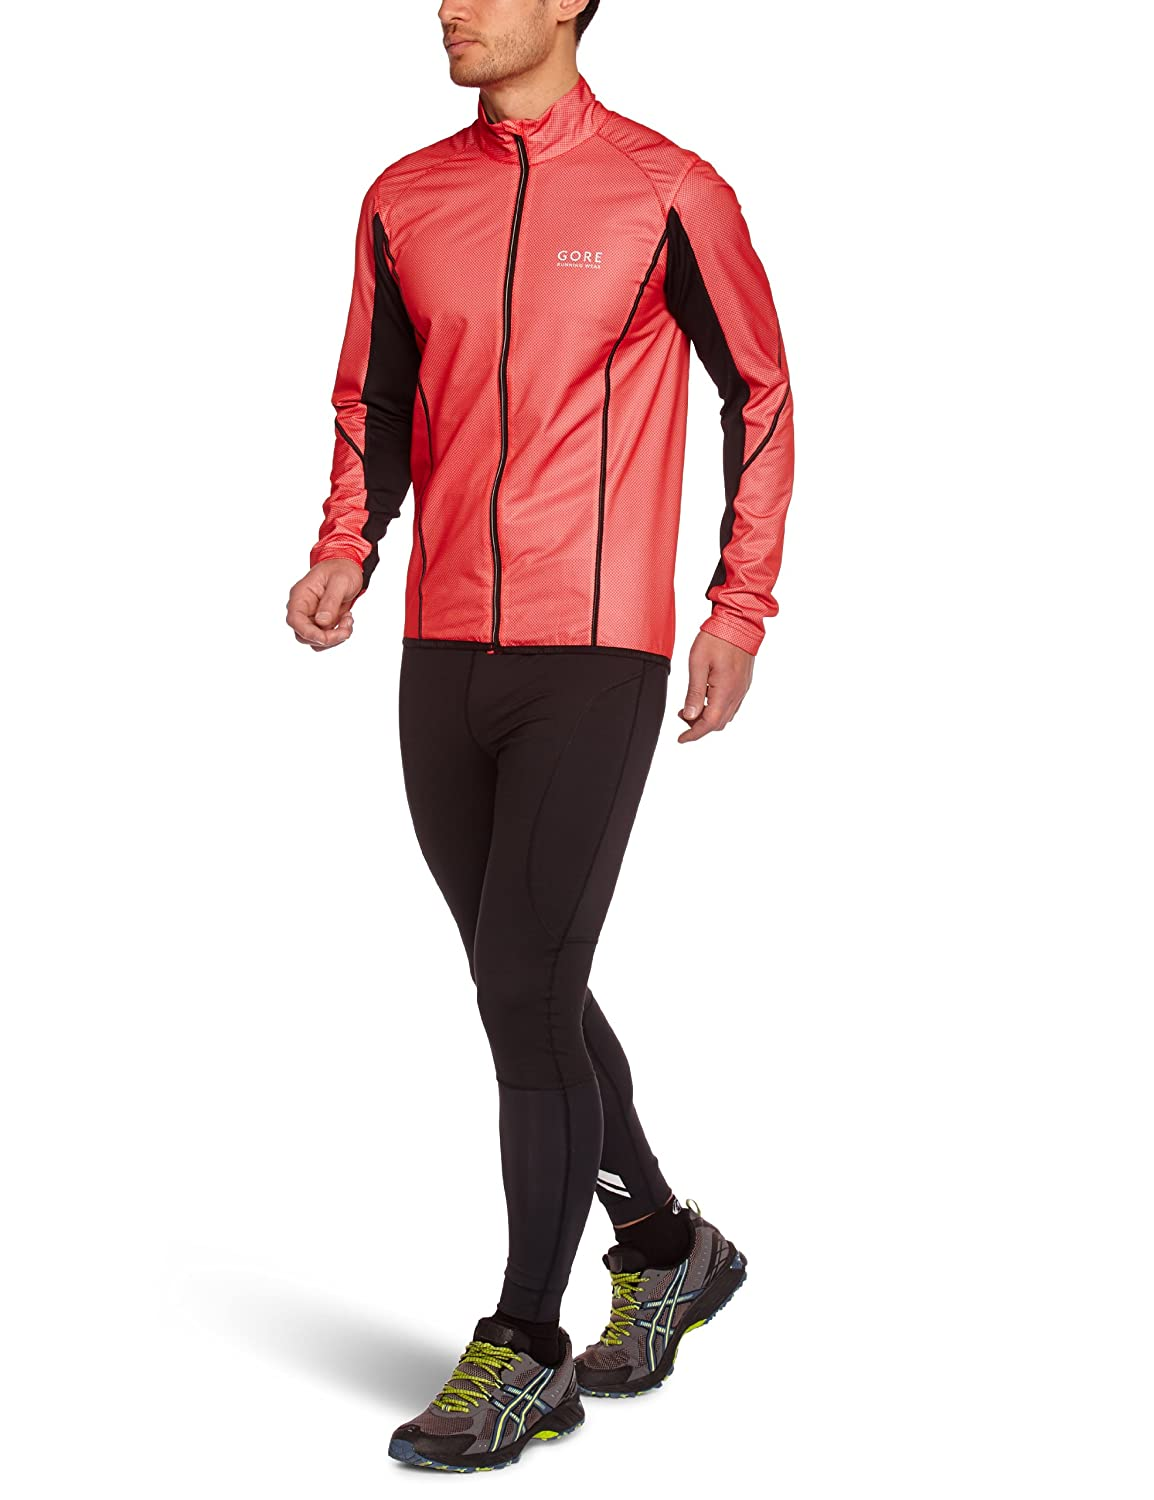 GORE RUNNING WEAR Herren winddichte Laufjacke, 2-Lagen WINDSTOPPER Active Shell, JWMAGN